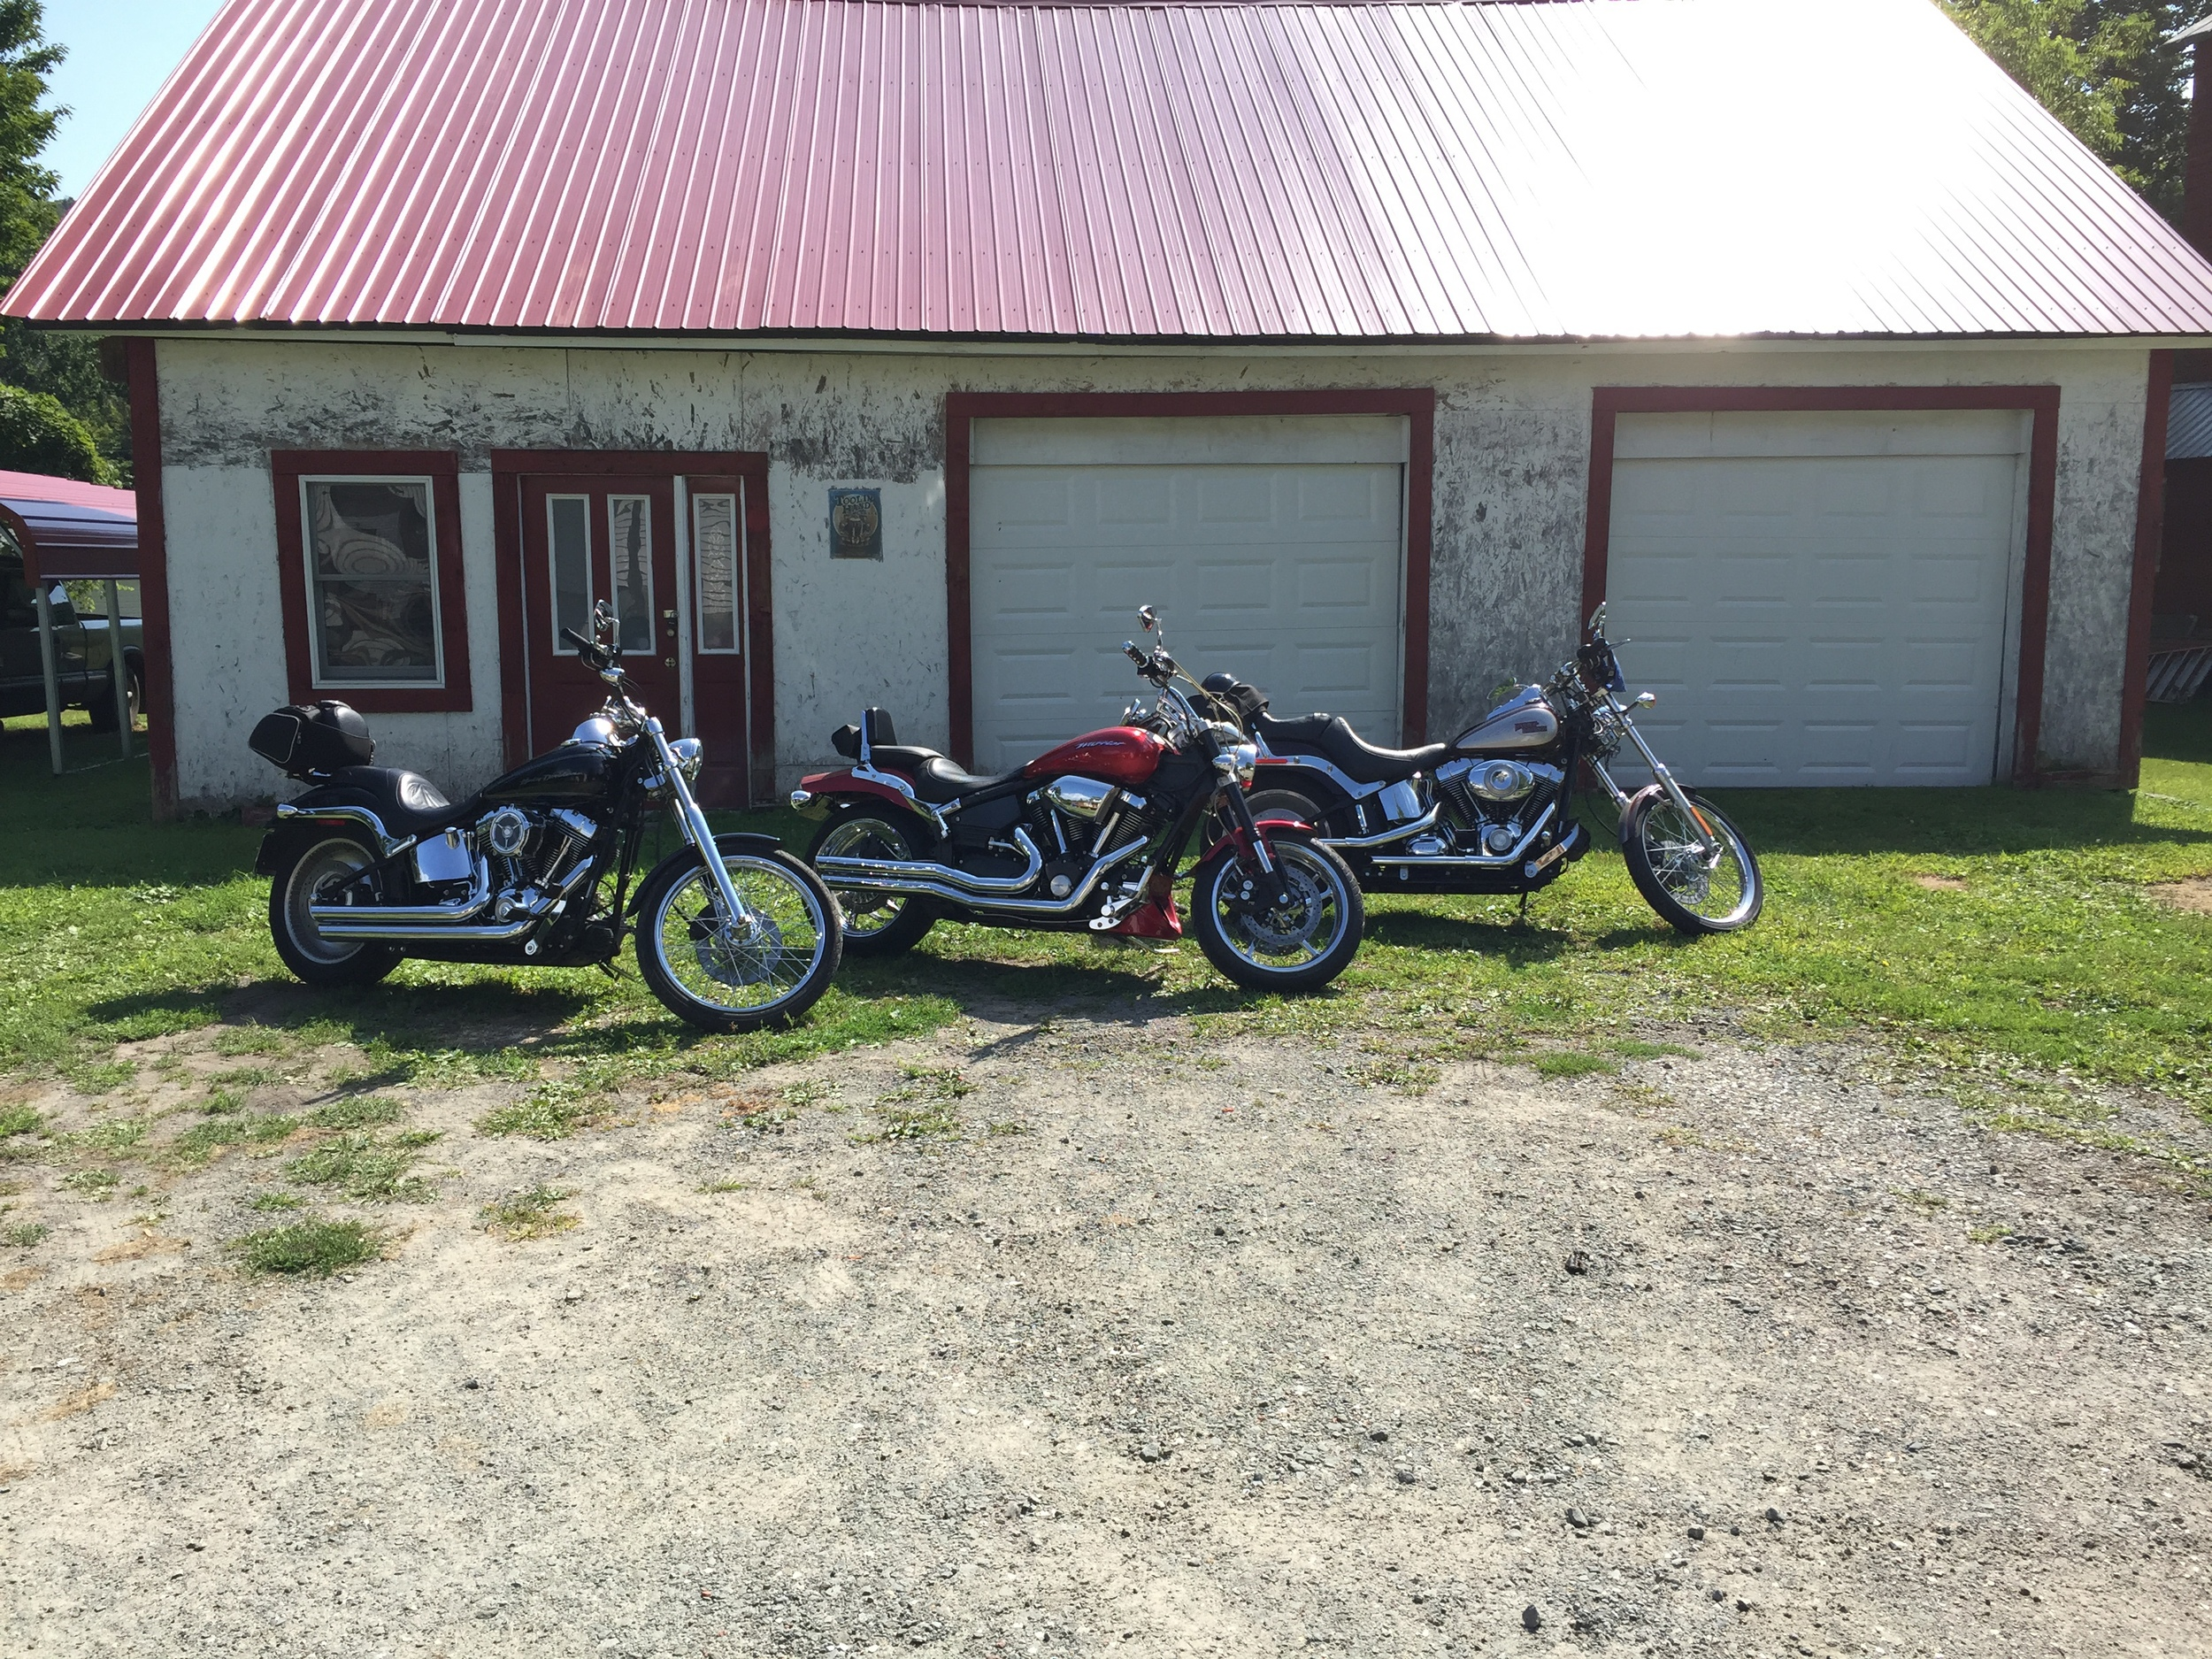 Nice day ride in PA with my Uncle and two of his friends.